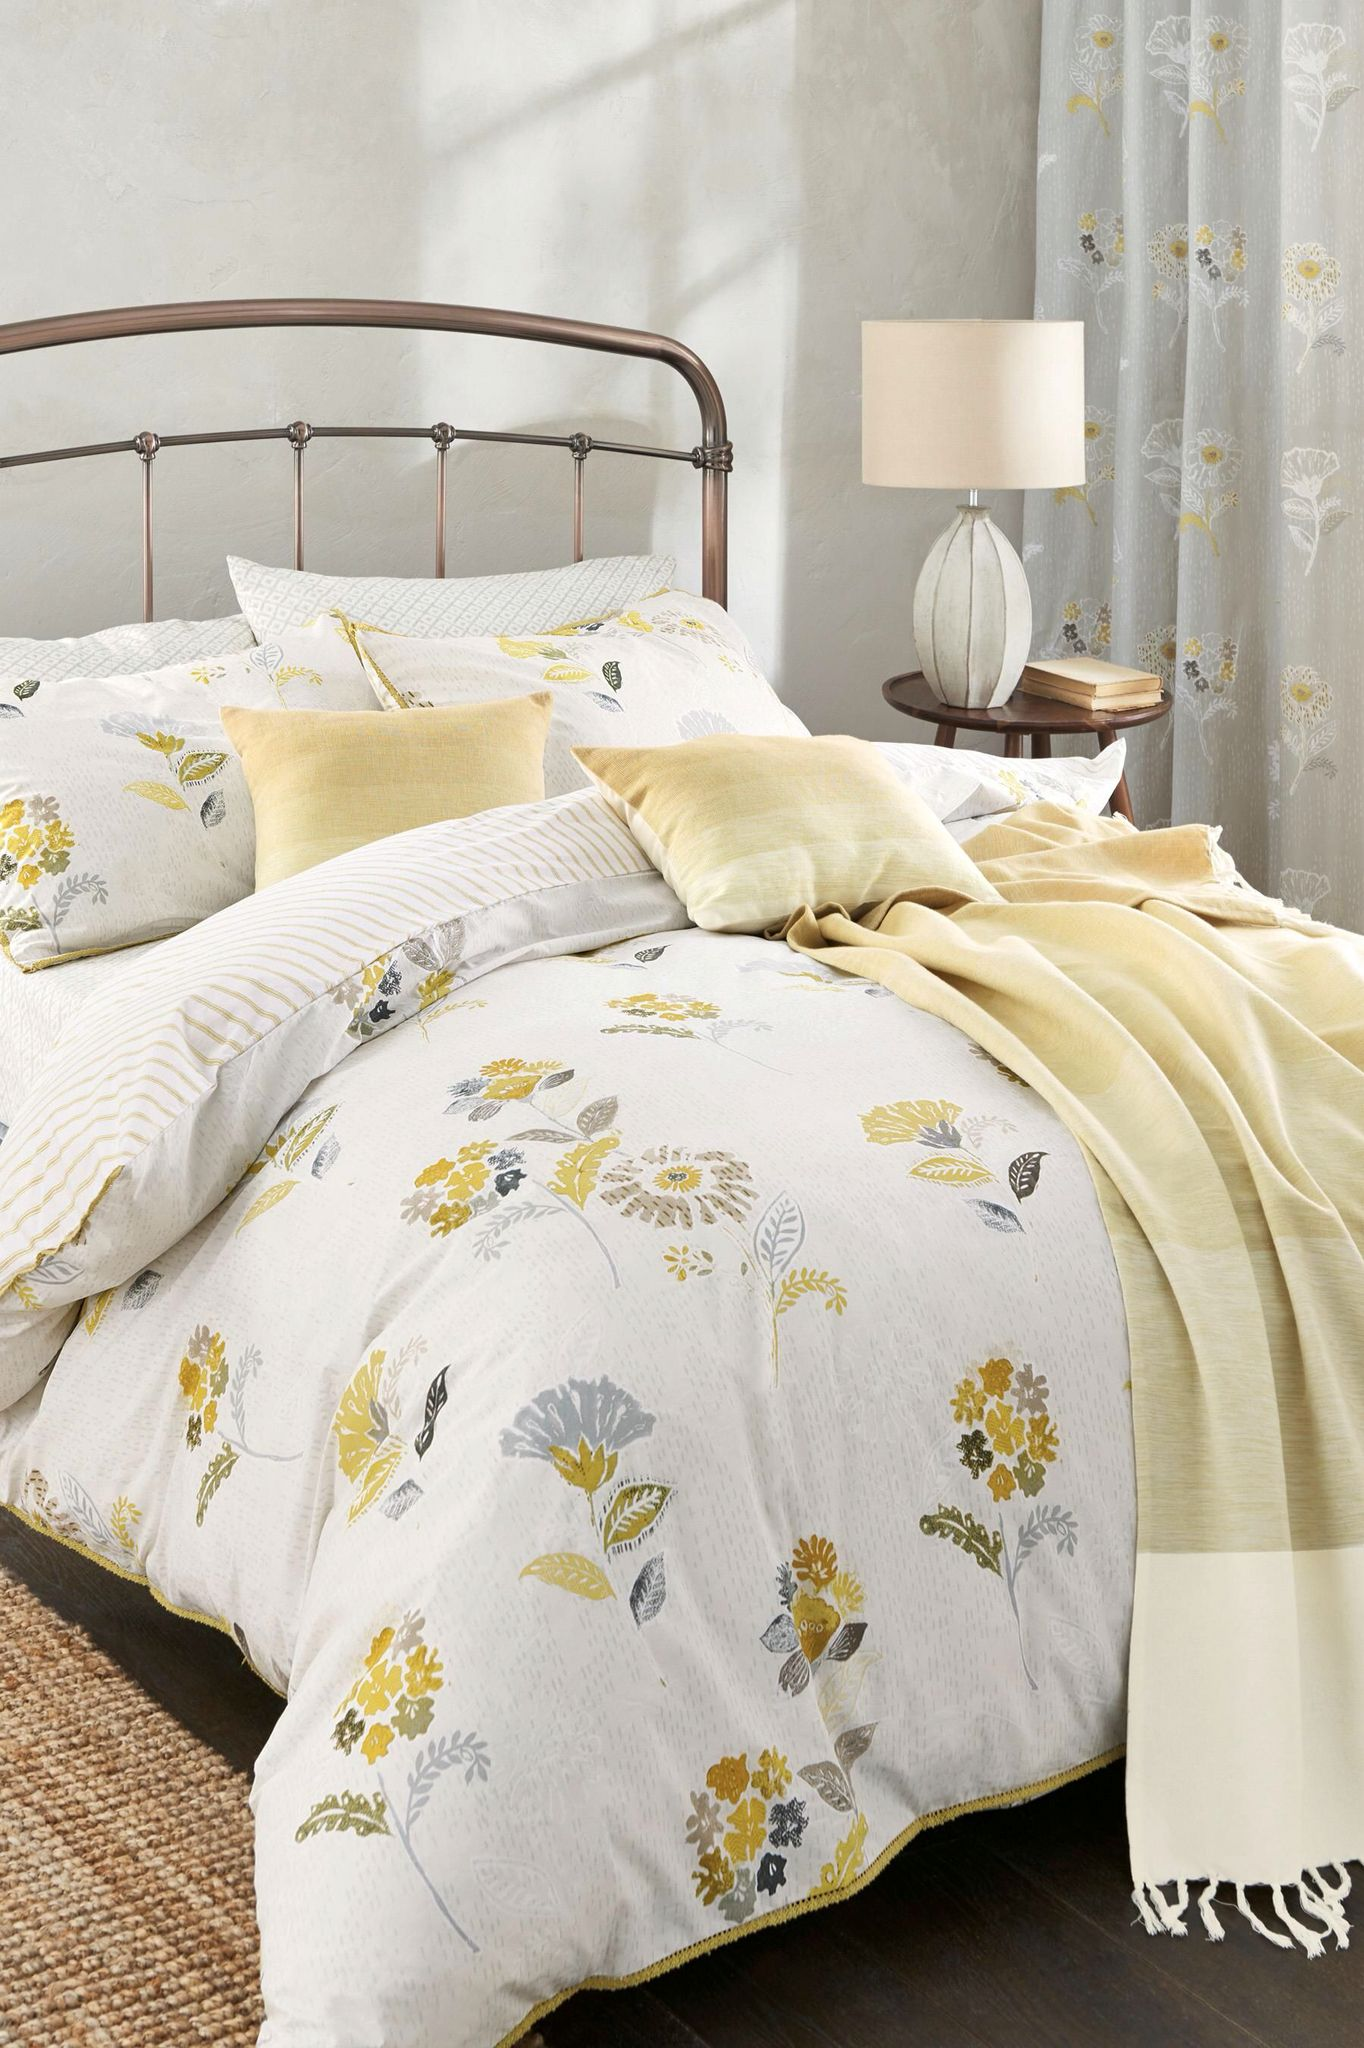 Pin by Thivyashini on home King size bedding sets